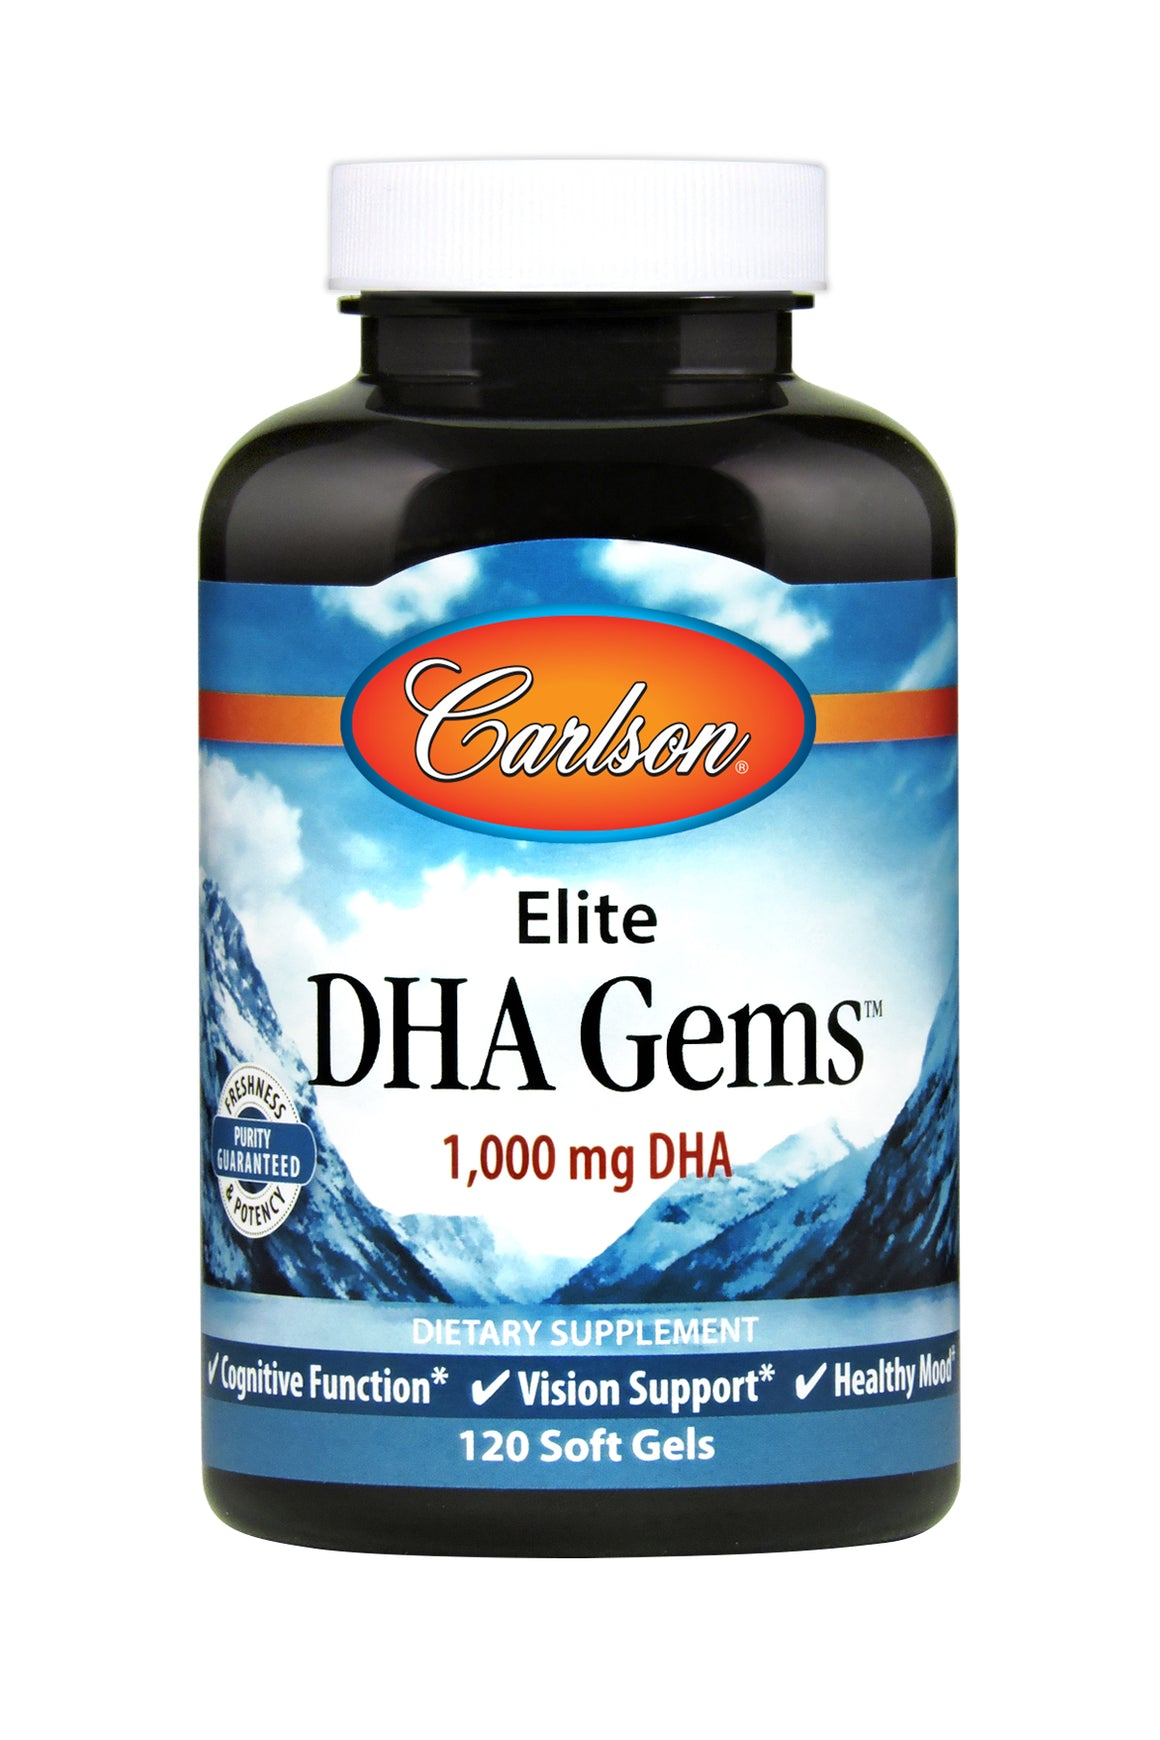 A bottle of Carlson Elite DHA Gems